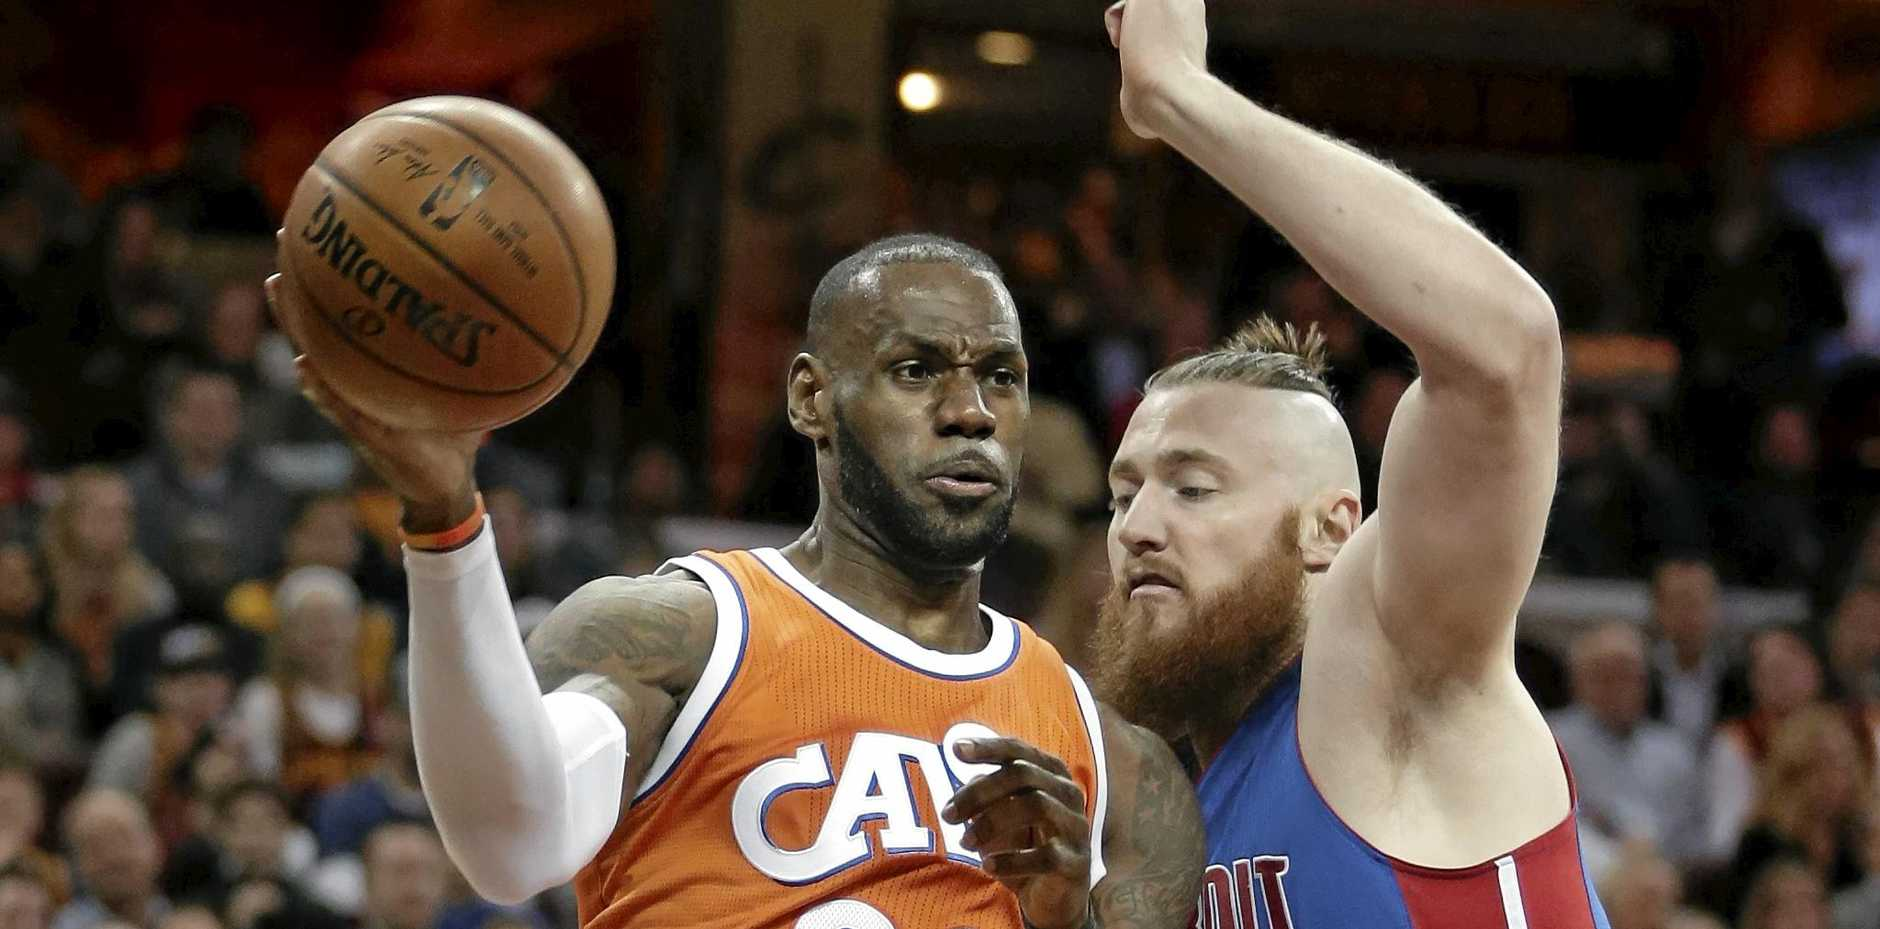 NBA ACTION: Cleveland Cavaliers' LeBron James drives against Detroit Pistons' Australian centre Aron Baynes.